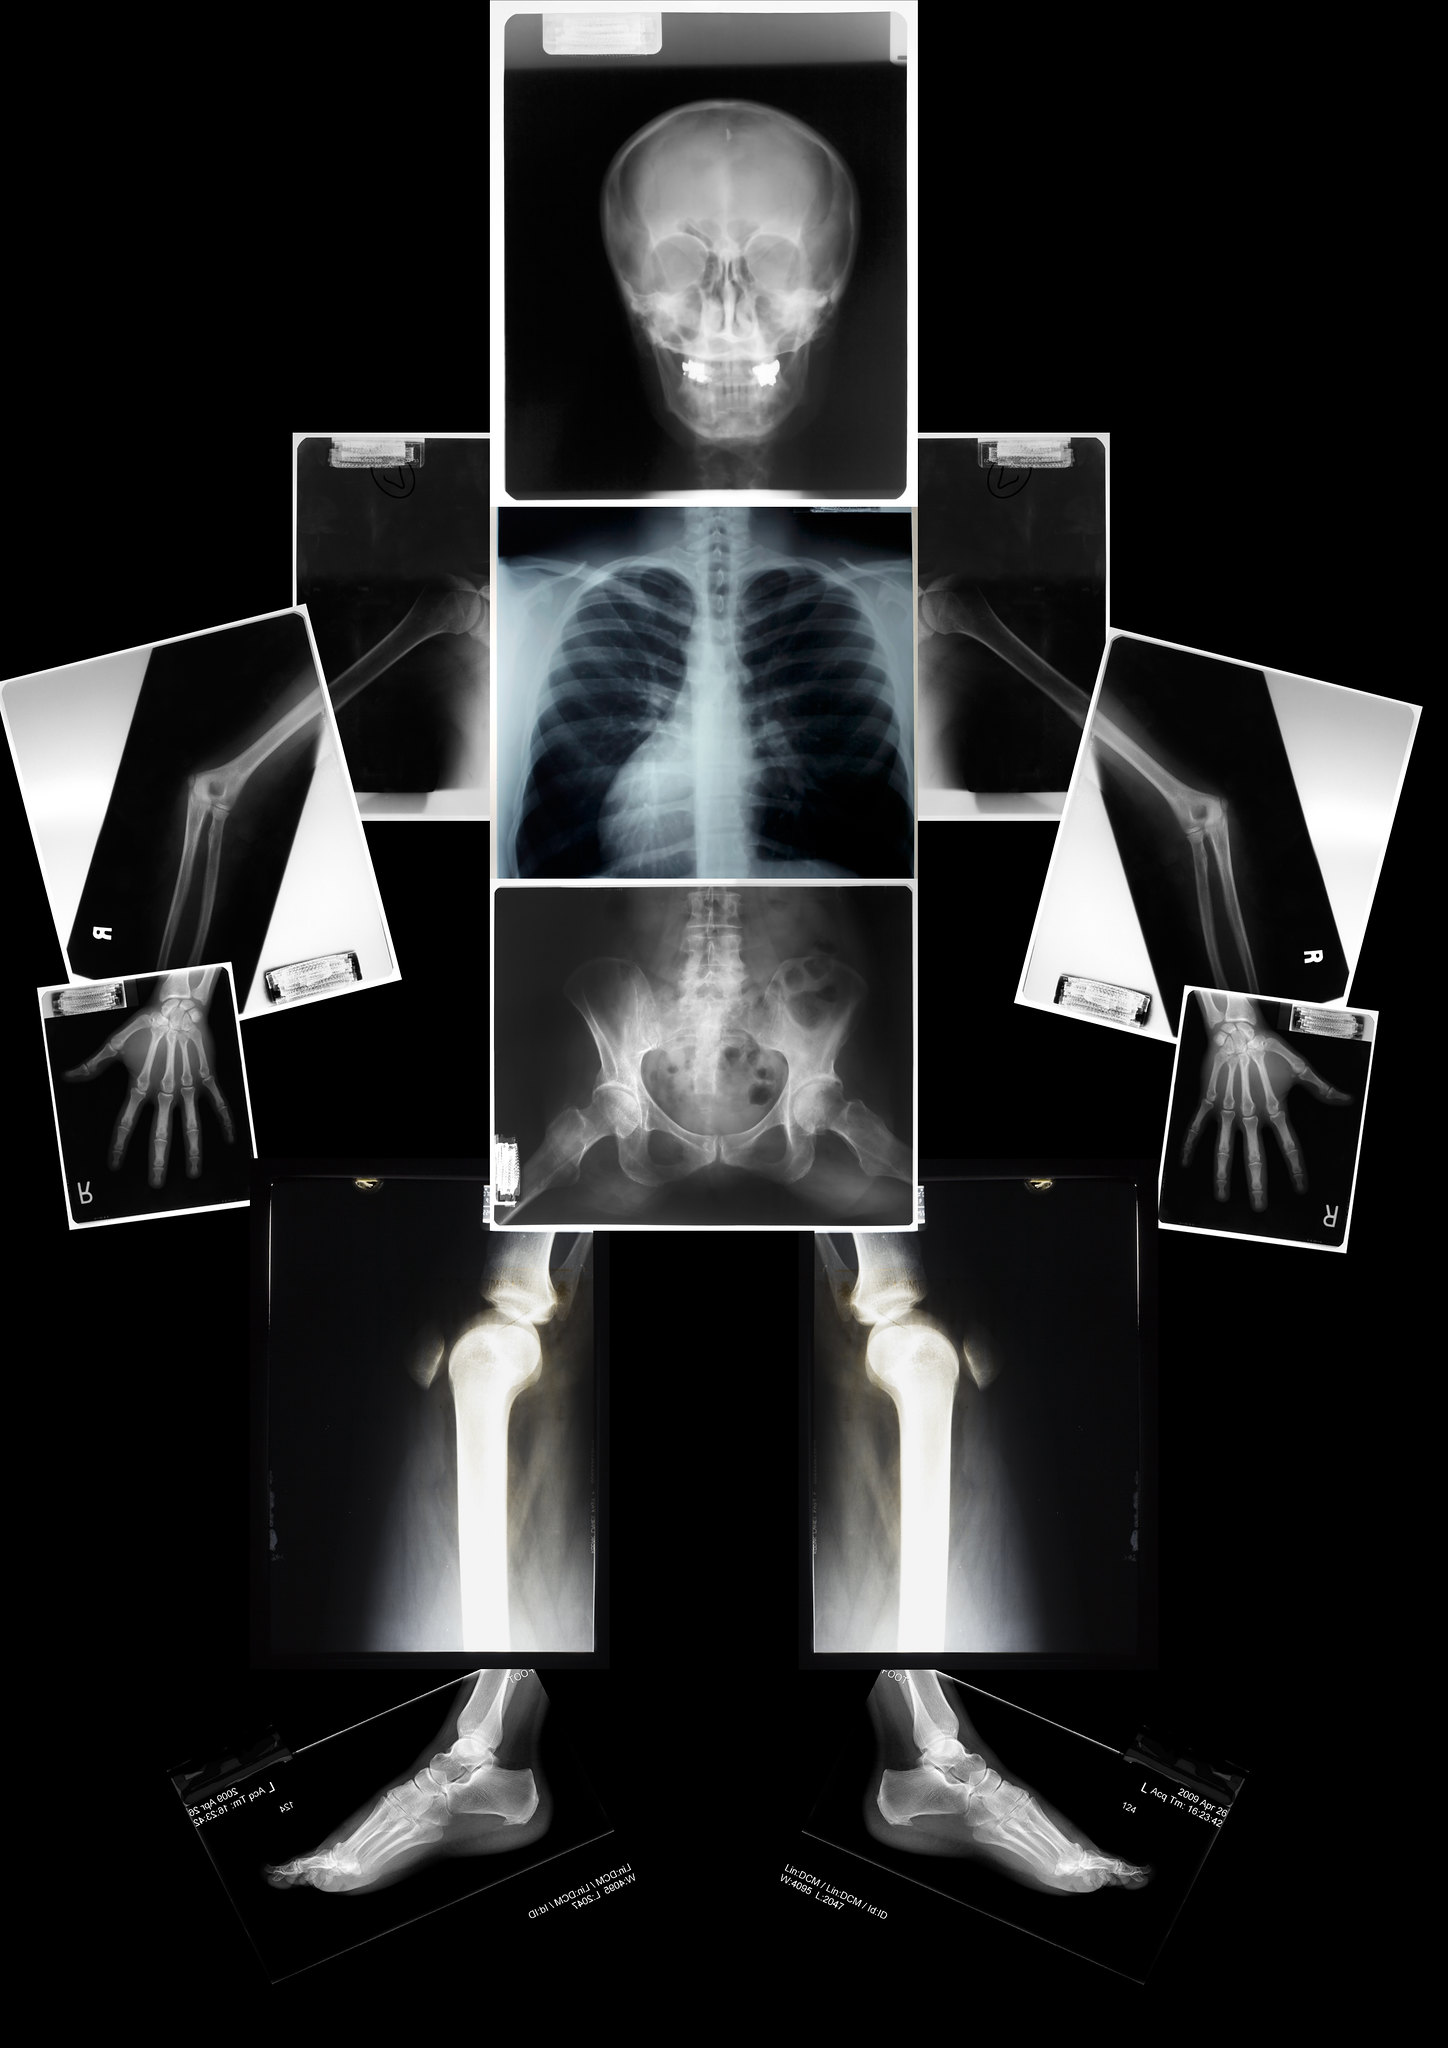 x-ray of a dwarf